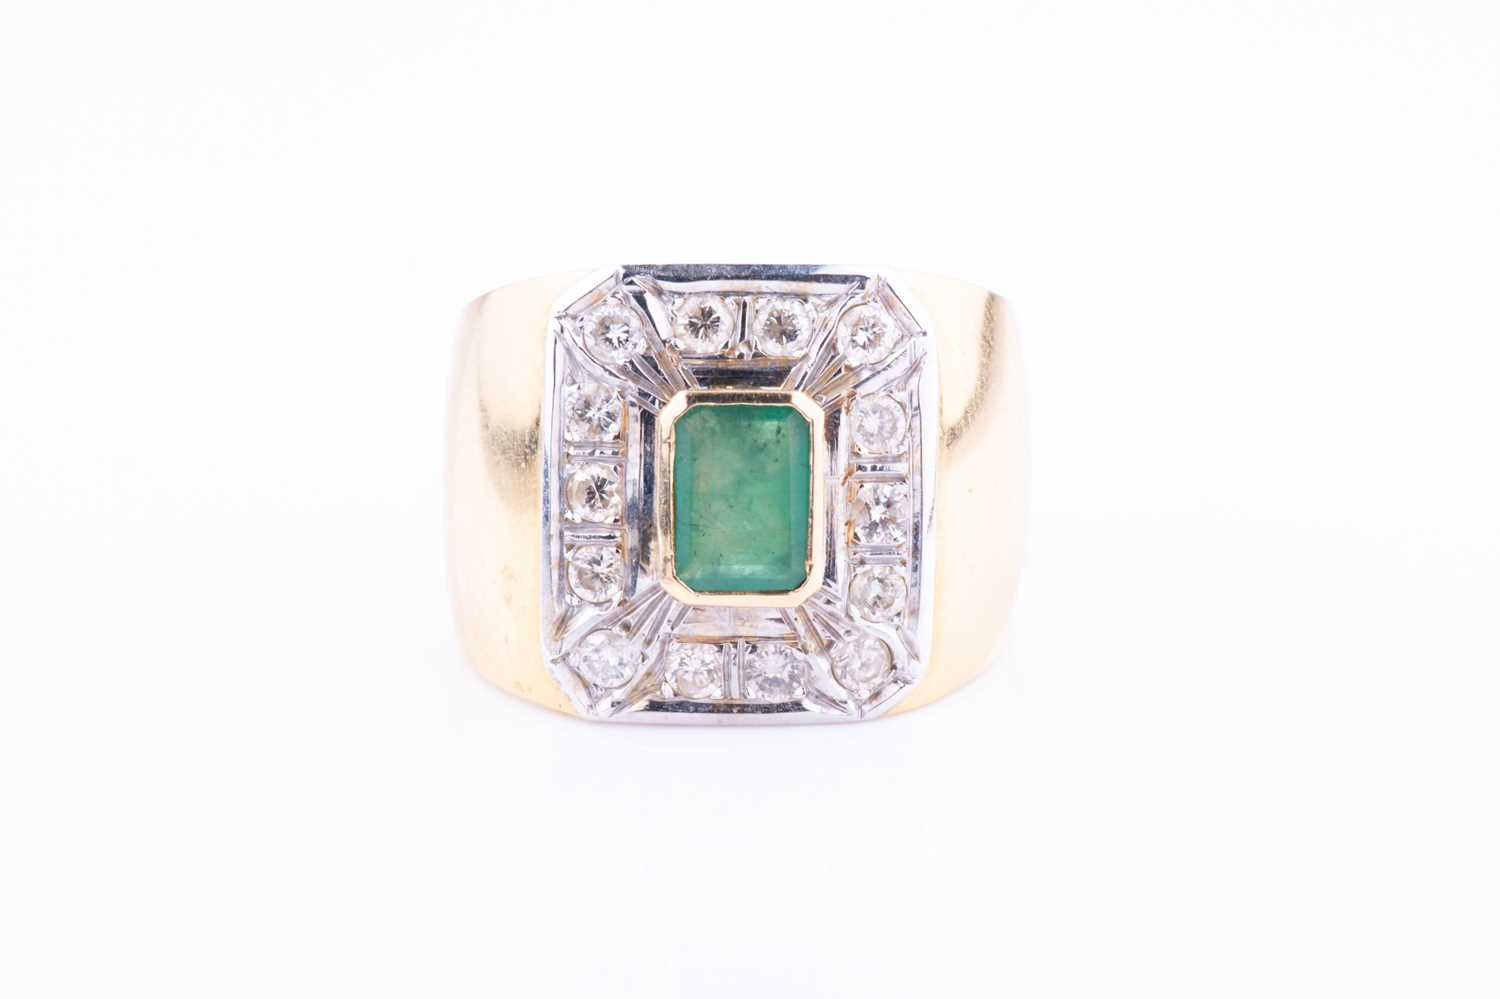 A yellow metal, diamond and emerald ring, centred with a bezel-set emerald, within a chamfered